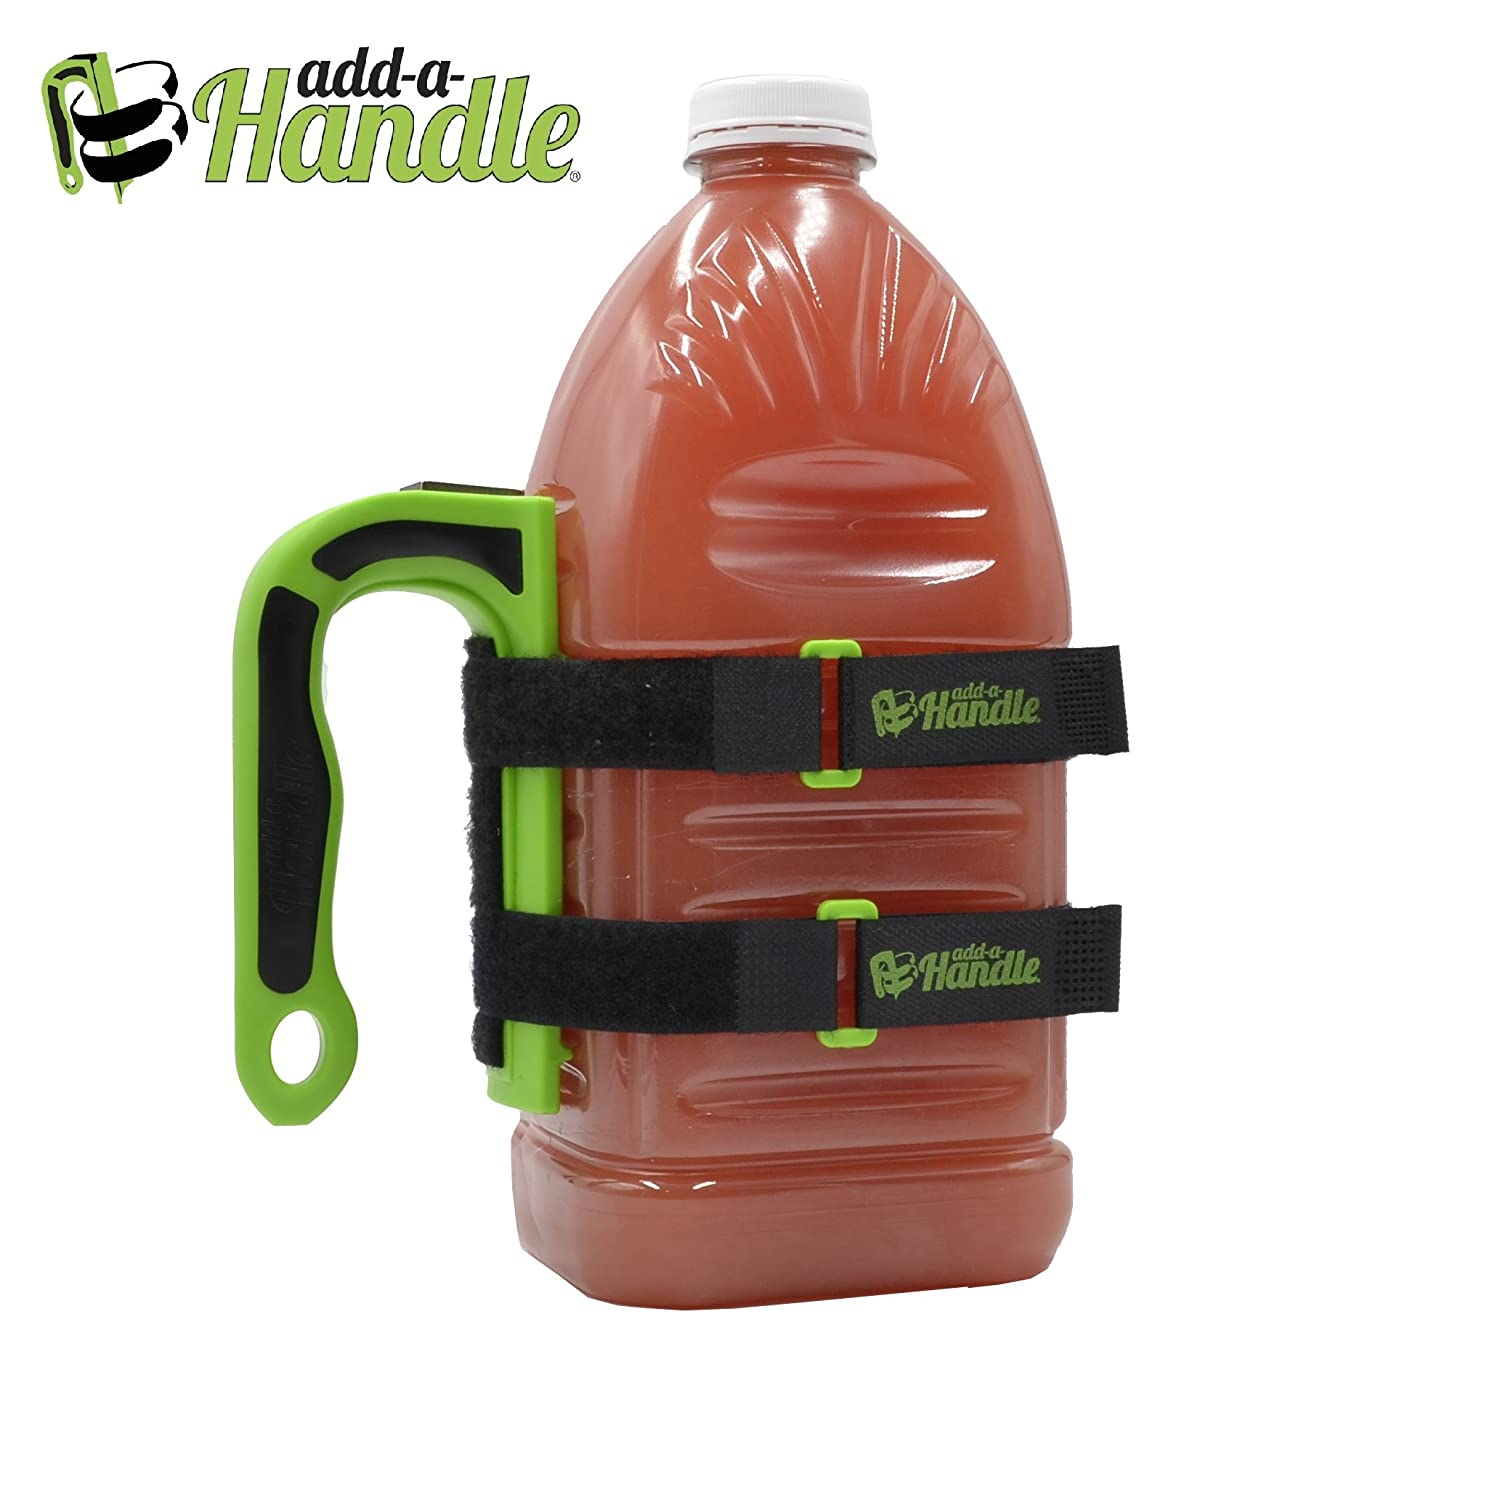 Add-a-Handle Green Multiuse Attachable Adjustable ADL Handle /& Hook w// 19 Velcro Brand Straps Pack of 2 We Have It Handled Corp. 2